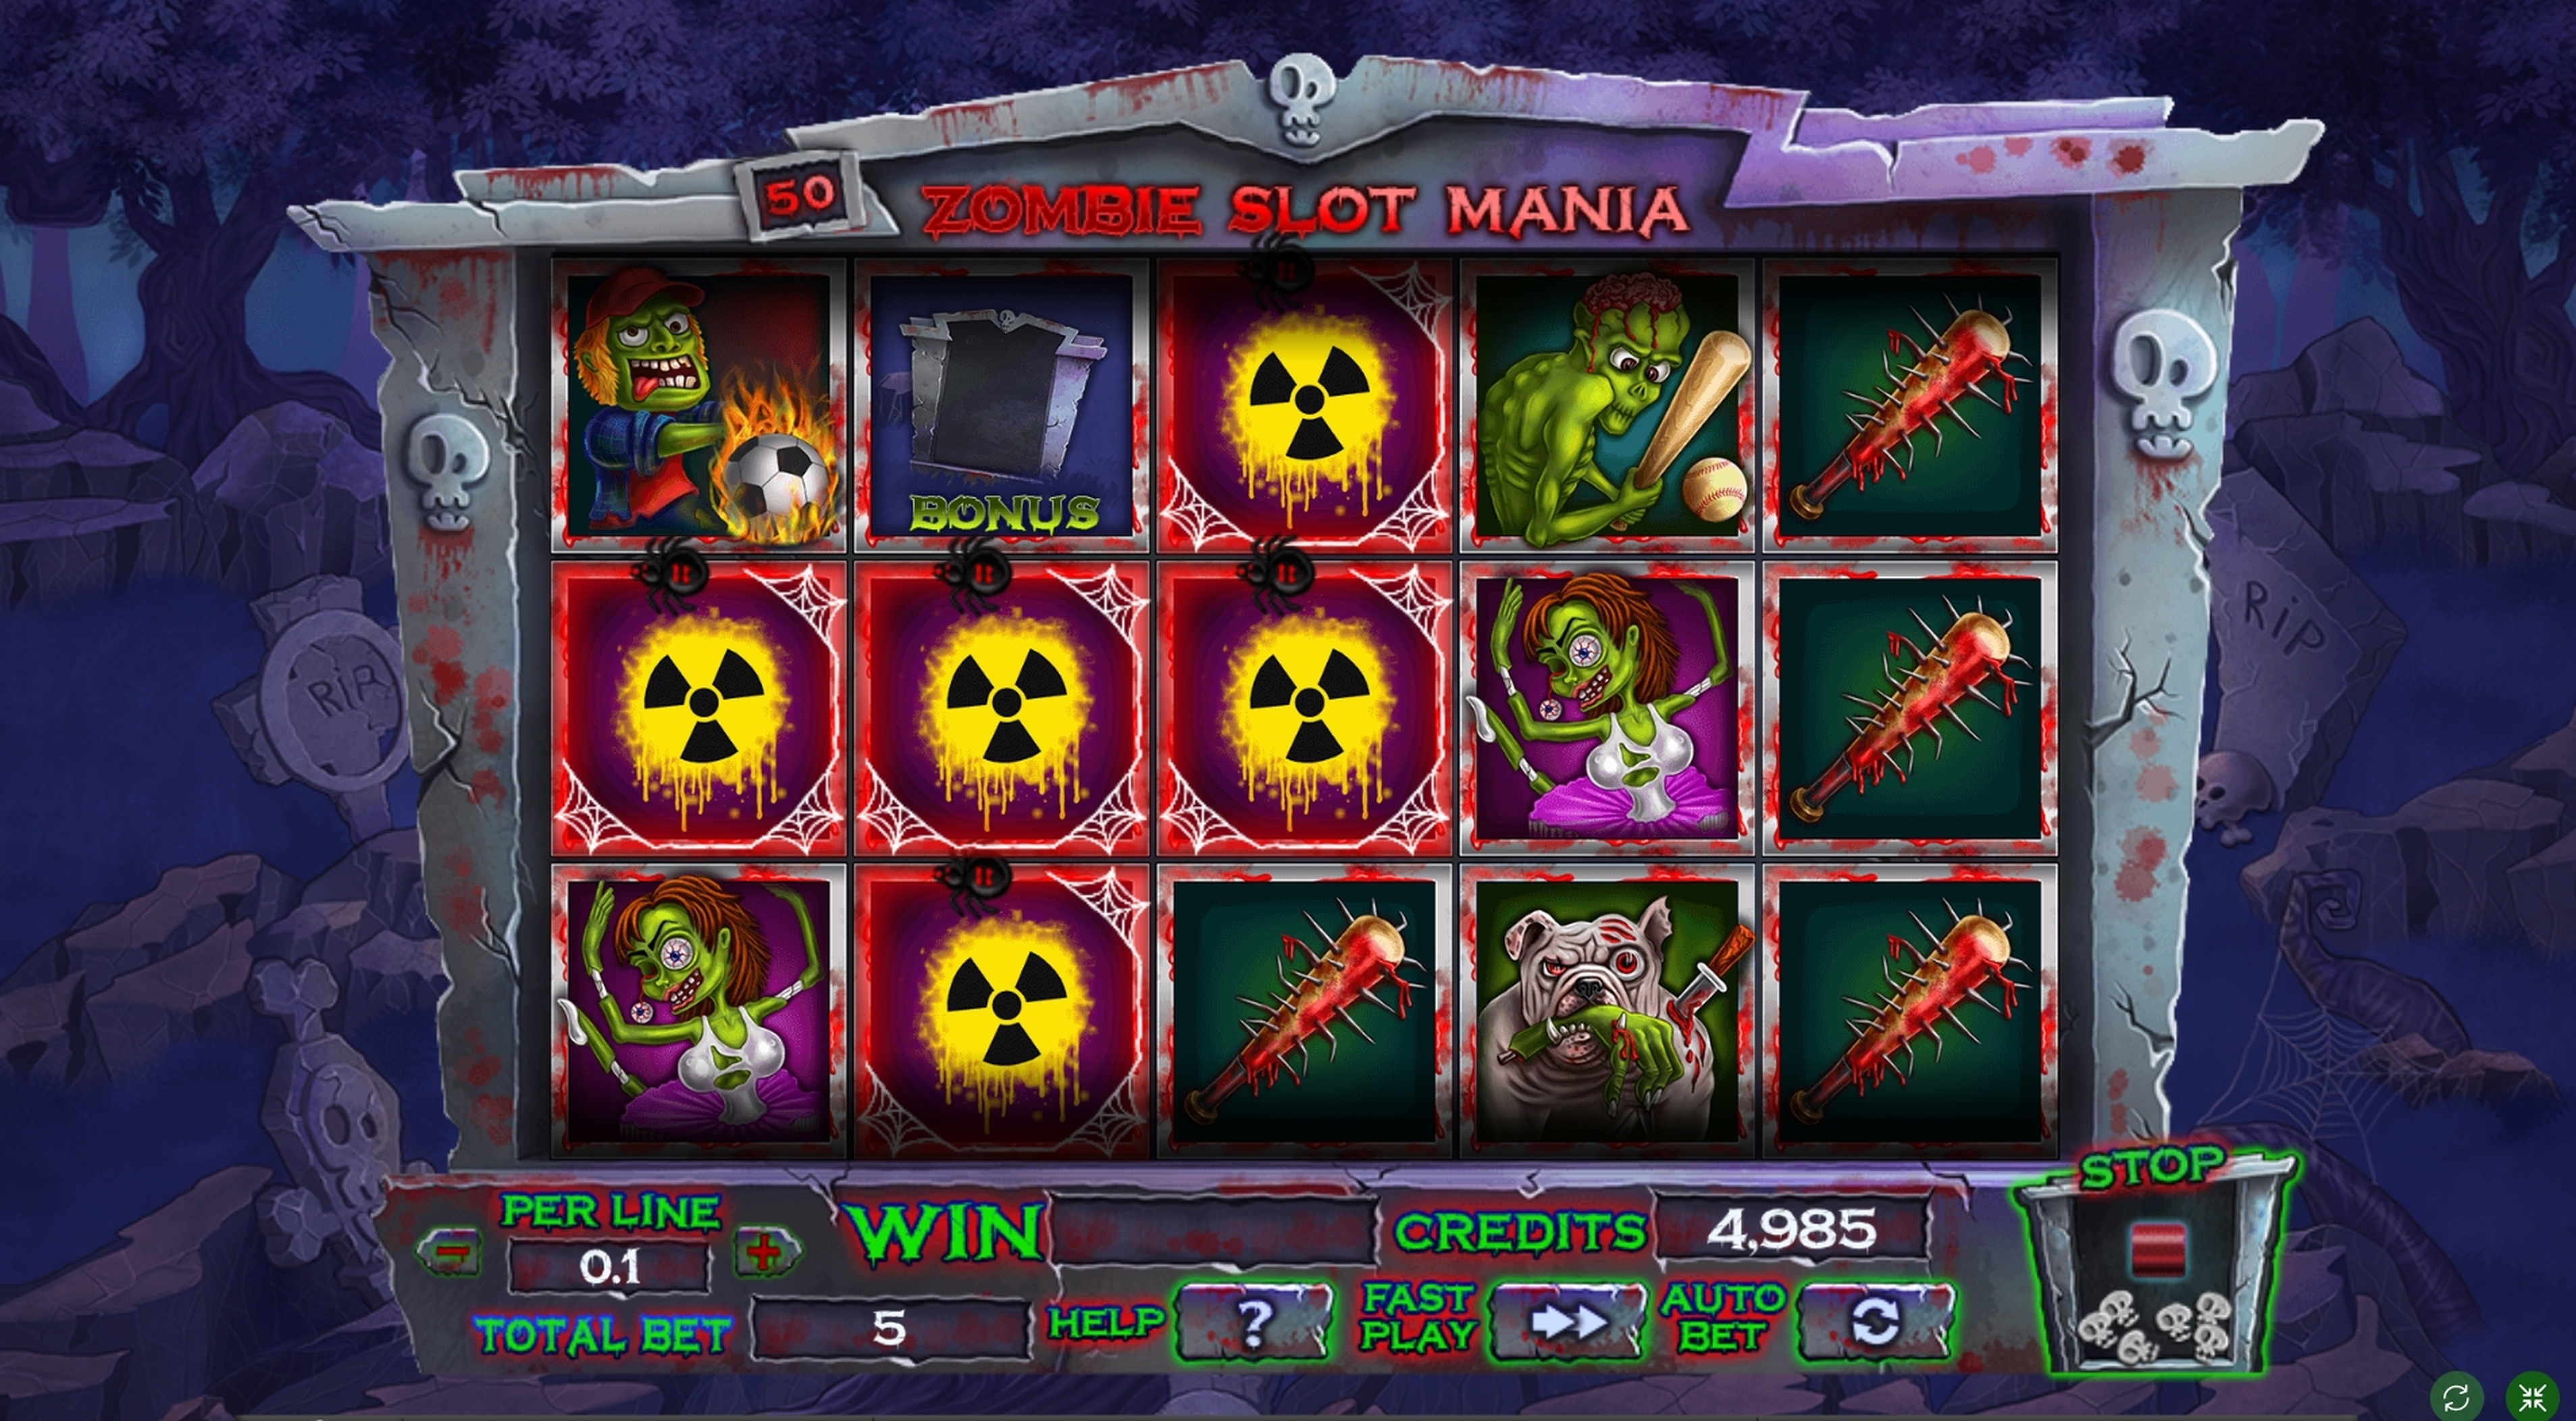 Win Money in Zombie slot mania Free Slot Game by Spinomenal